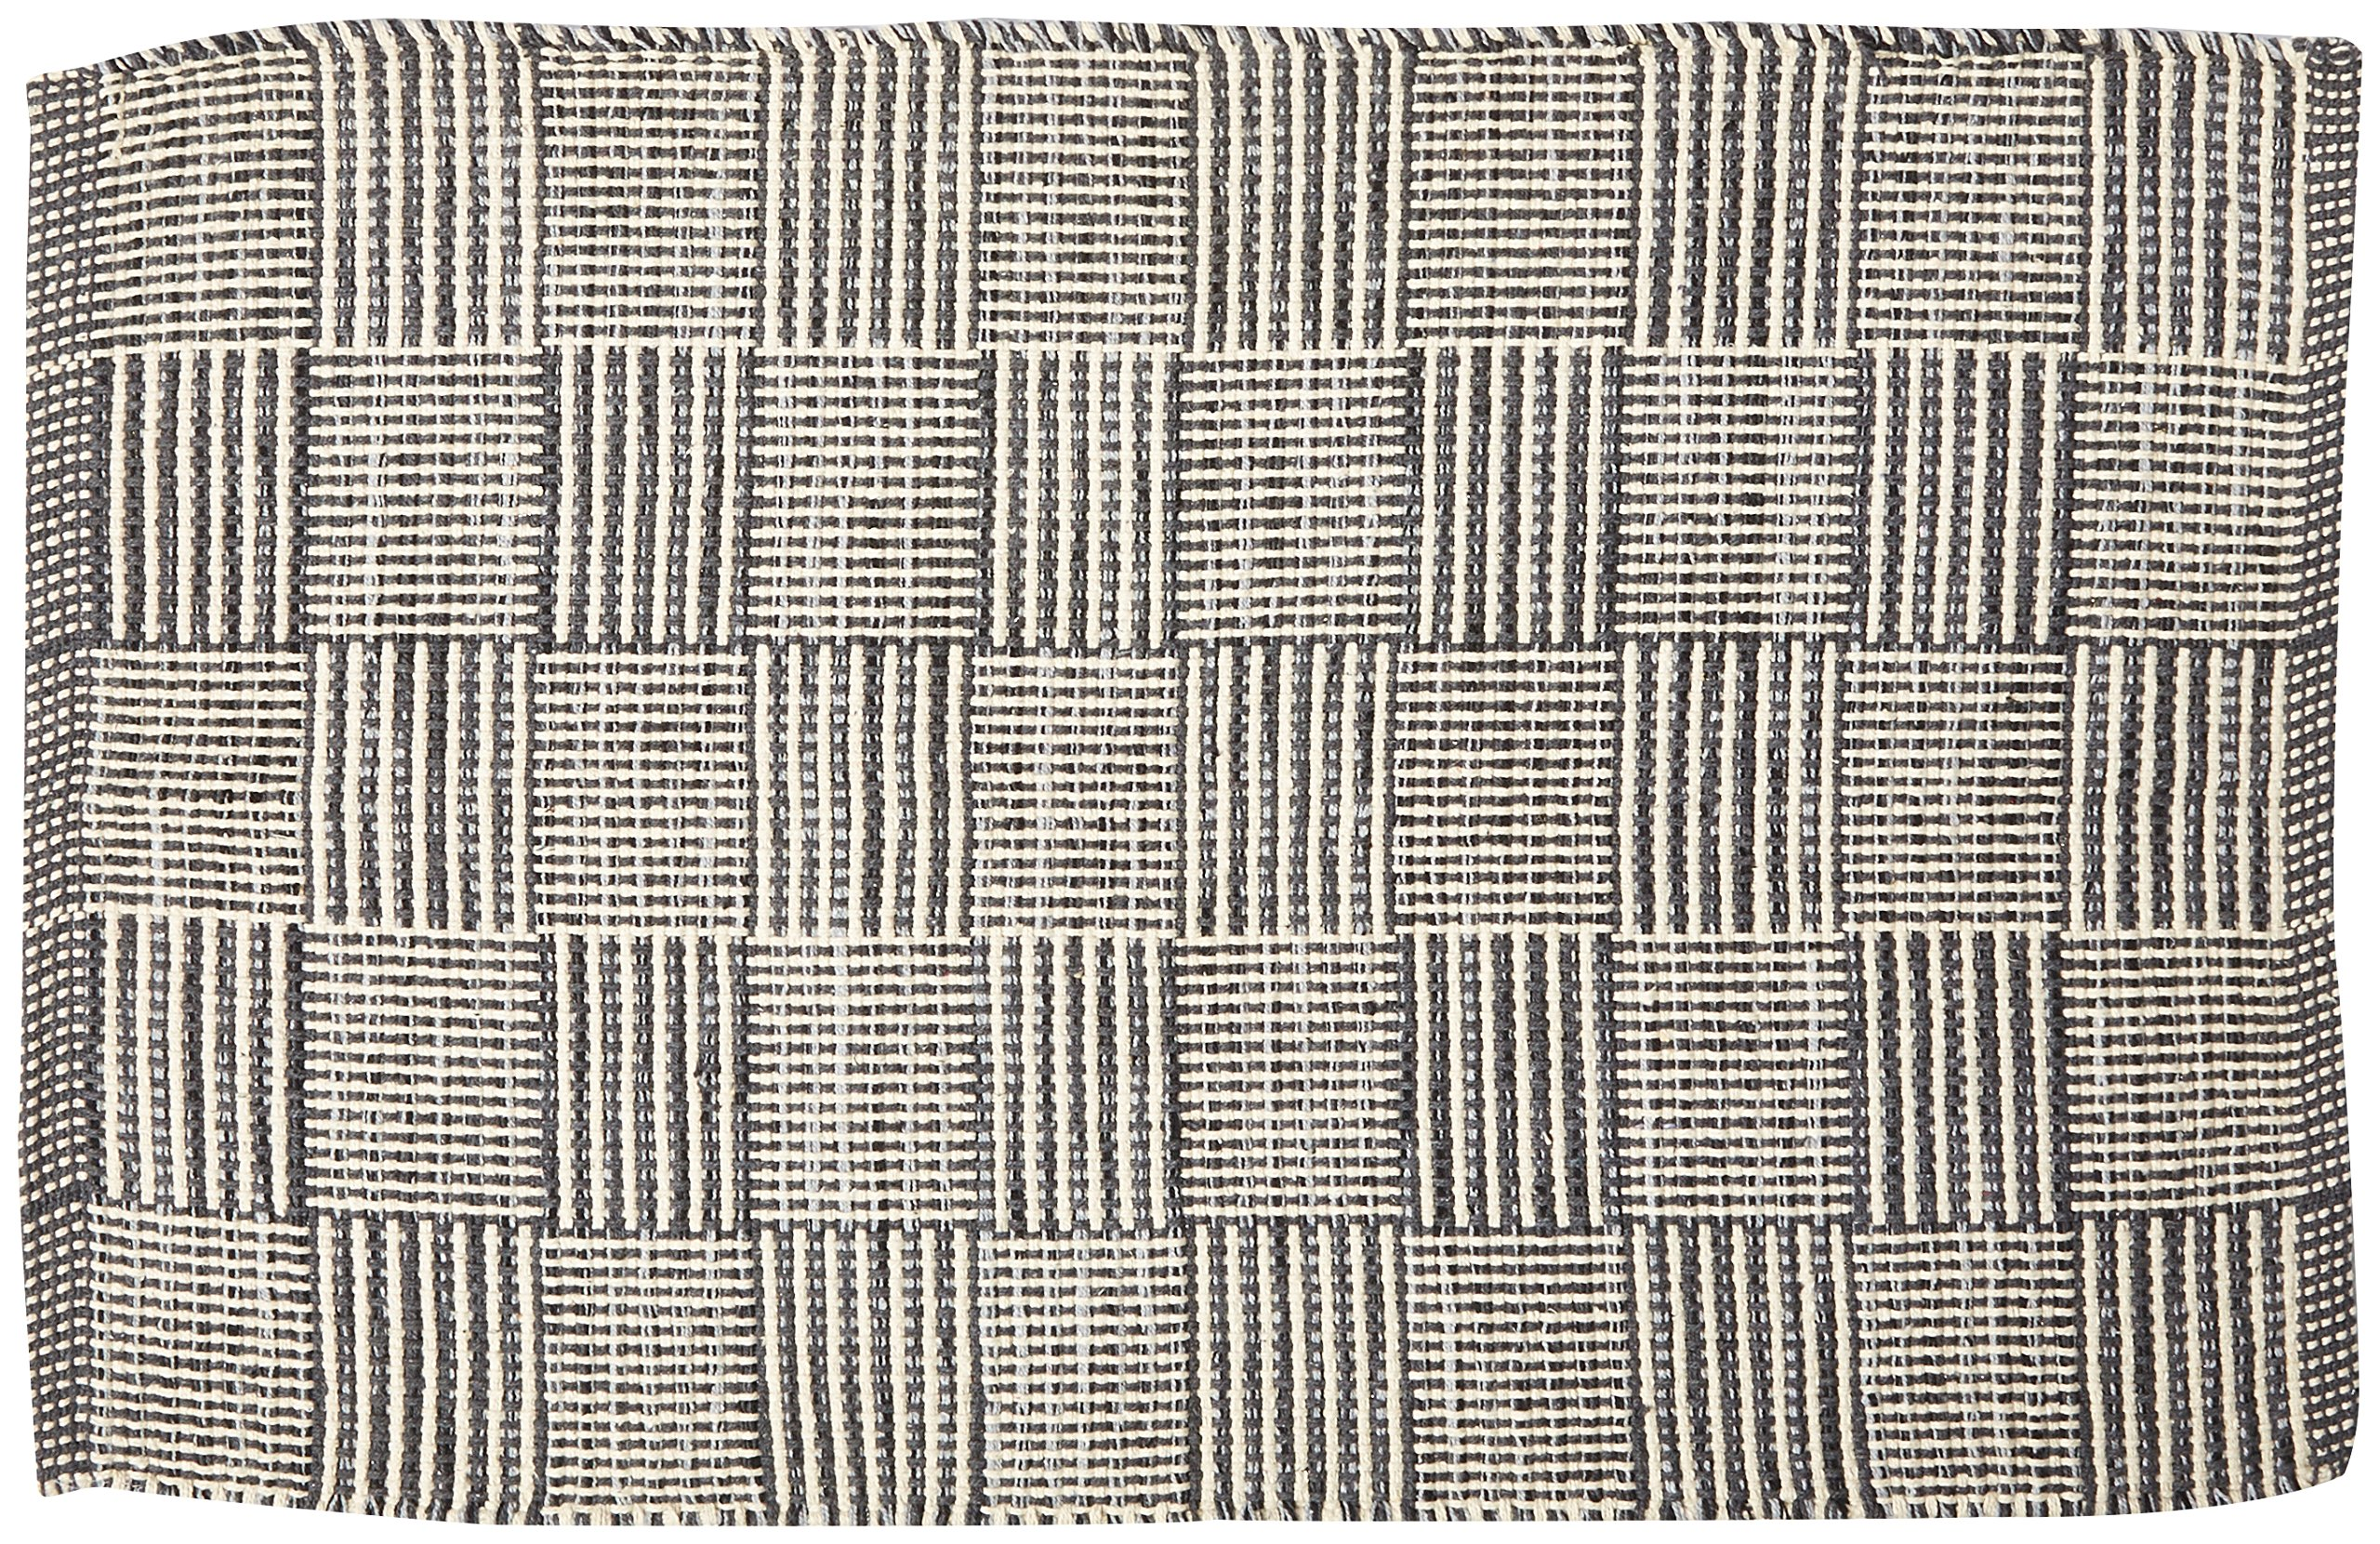 "DII Contemporary Reversible Indoor Area Rag Rug, Machine Washable, Handmade from Recycled Yarn, Unique For Bedroom, Living Room, Kitchen, Nursery and more, (20x31.5"") - Mint (Color may vary) - CHIC DESIGN - Average size is 2x3' size, 100% Cotton and machine washable, hang dry FIND THE RIGHT RUG FOR YOUR SPACE - Makes a perfect area rug, kitchen rug, bathroom rug, entry way rug, apartment rug, dorm room rug and more - available in an assortment colors DURABLE FOR EVERYDAY USE - Due to rag rug process, this area rug is long lasting and stands up to wear and tear - double sided for longer life - living-room-soft-furnishings, living-room, area-rugs - A1SZ63XPUoL -"